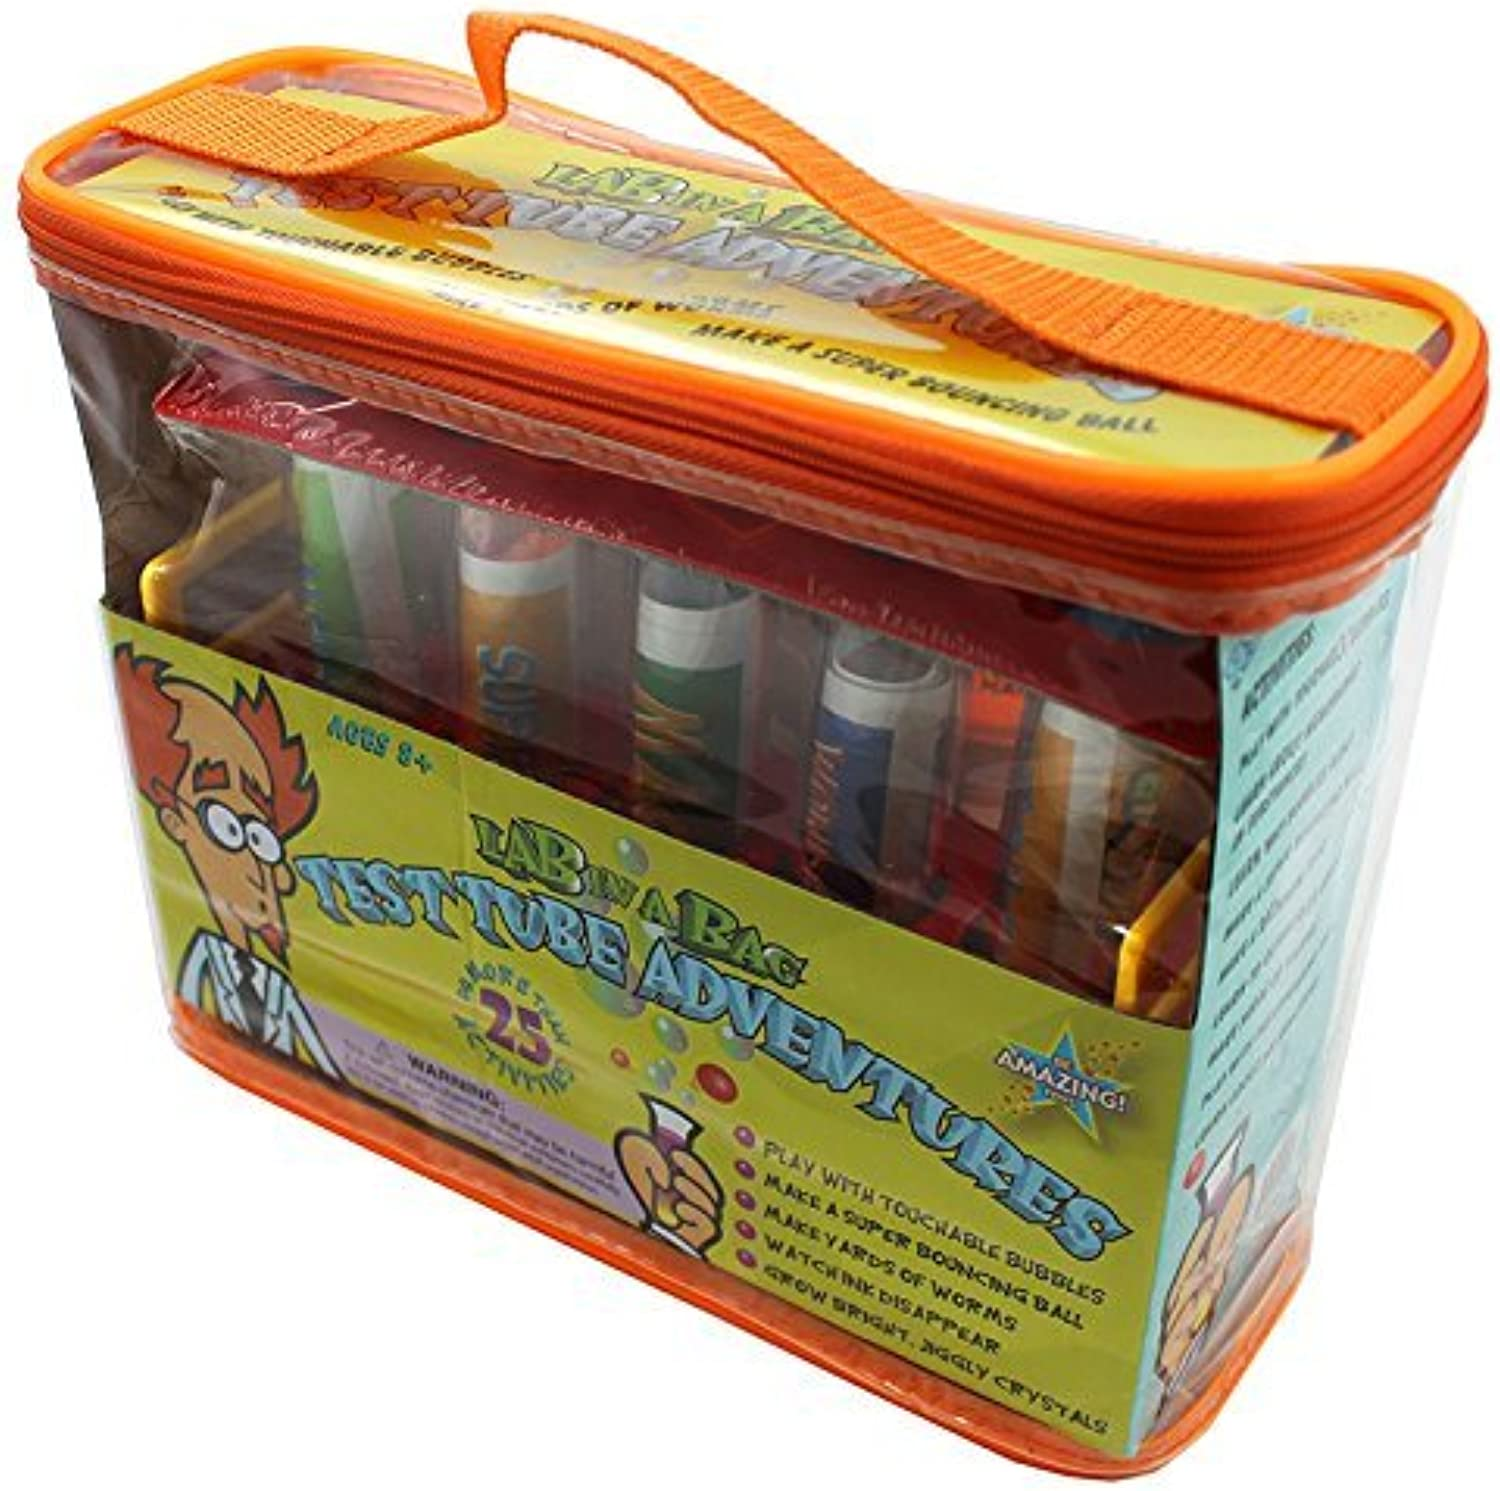 Test tube adventures lab-in-a-bag by BE AMAZING TOYS